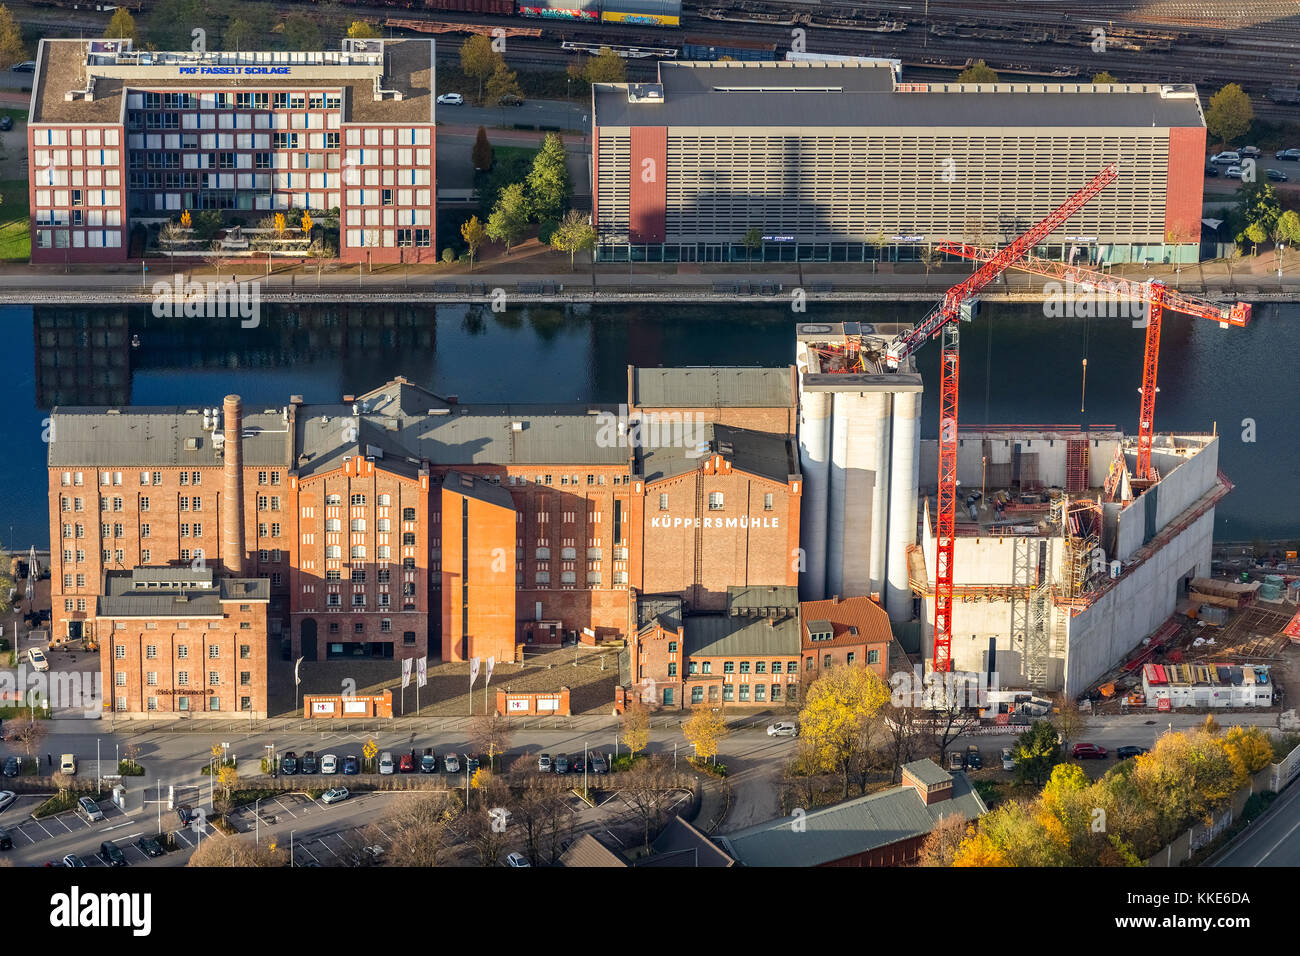 Construction work on the Museum Küppersmühle in the inner harbor of Duisburg, Duisburg, Ruhr area, North - Stock Image